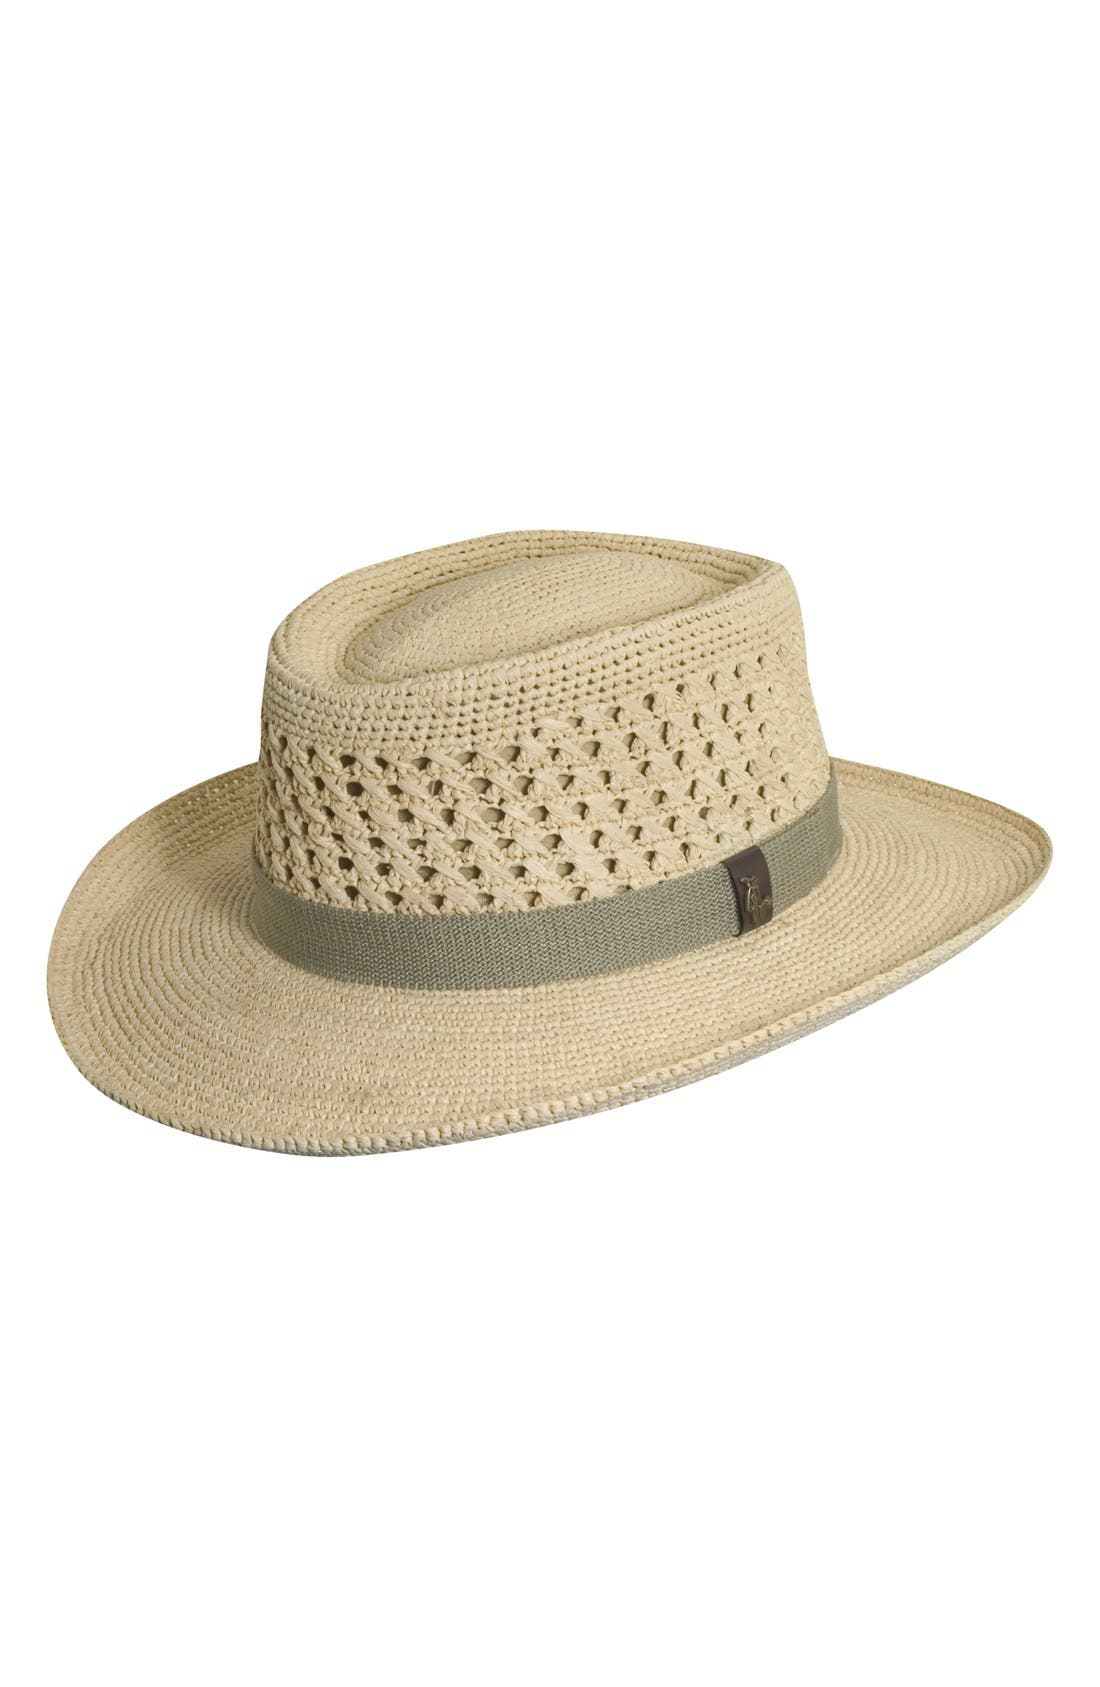 Raffia Gambler Hat,                         Main,                         color, 101